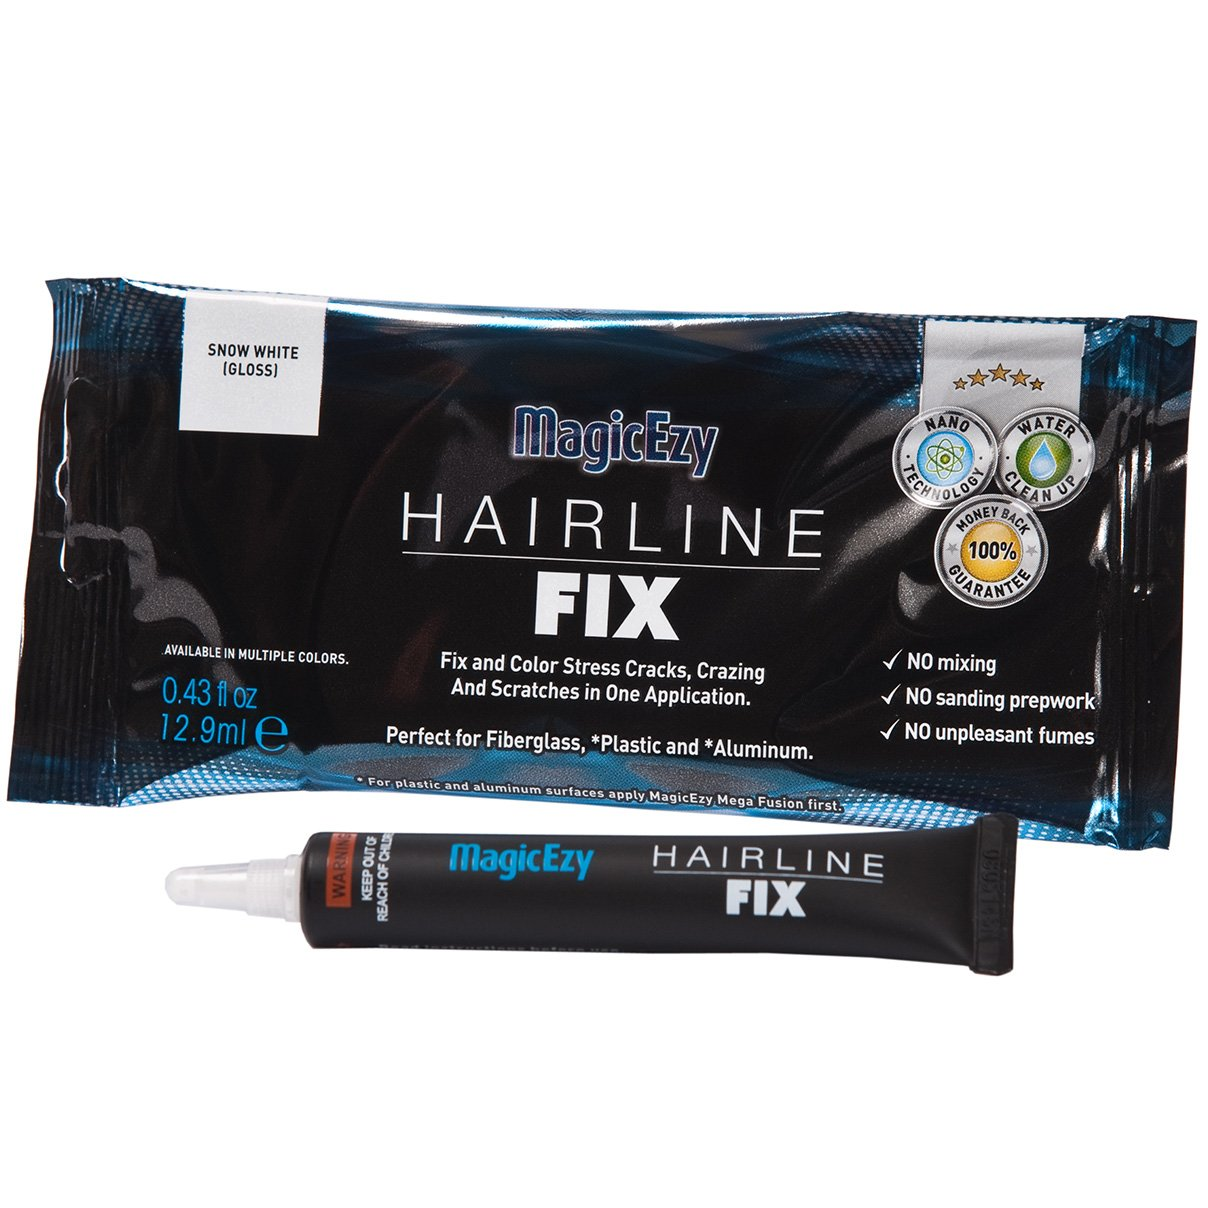 MagicEzy Hairline Fix - One part gelcoat repair - Color Matched to boat - Structural Grade Adhesion - Highly flexible so repairs hold. (Strawberry) by MagicEzy